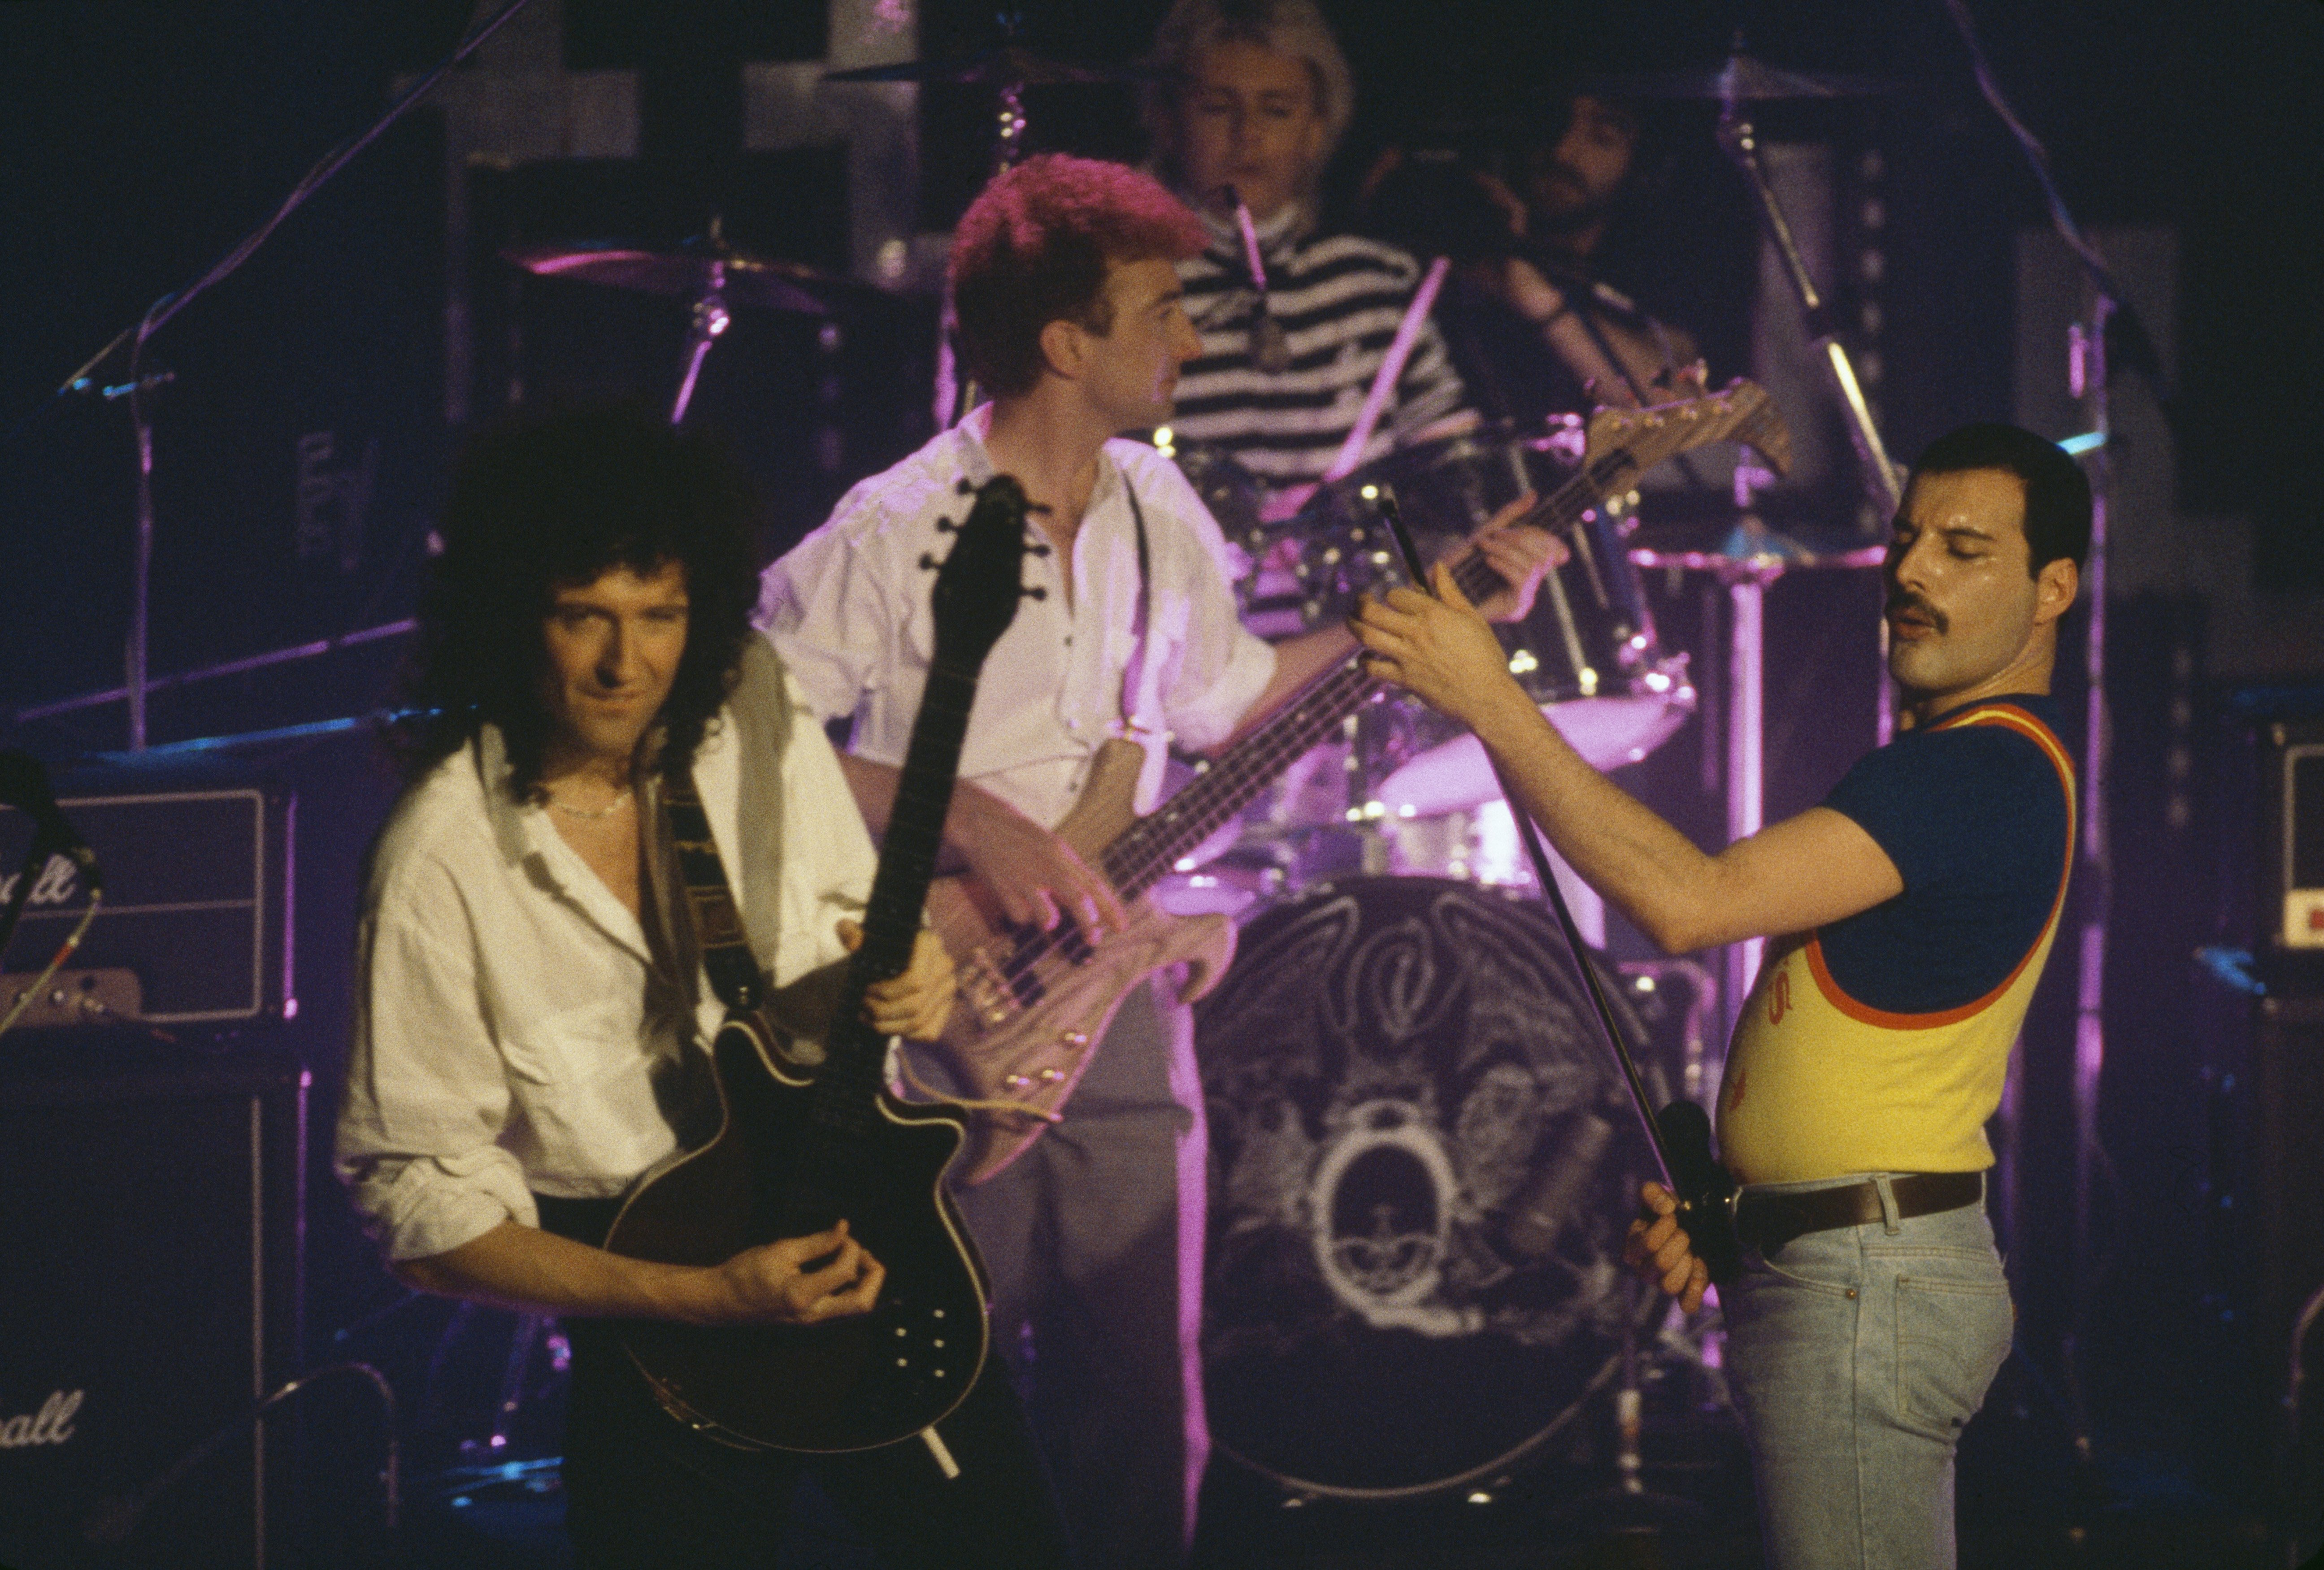 Queen performing on stage, 1986. Left to right: Brian May, John Deacon, Roger Taylor and Freddie Mercury. | Photo: GettyImages